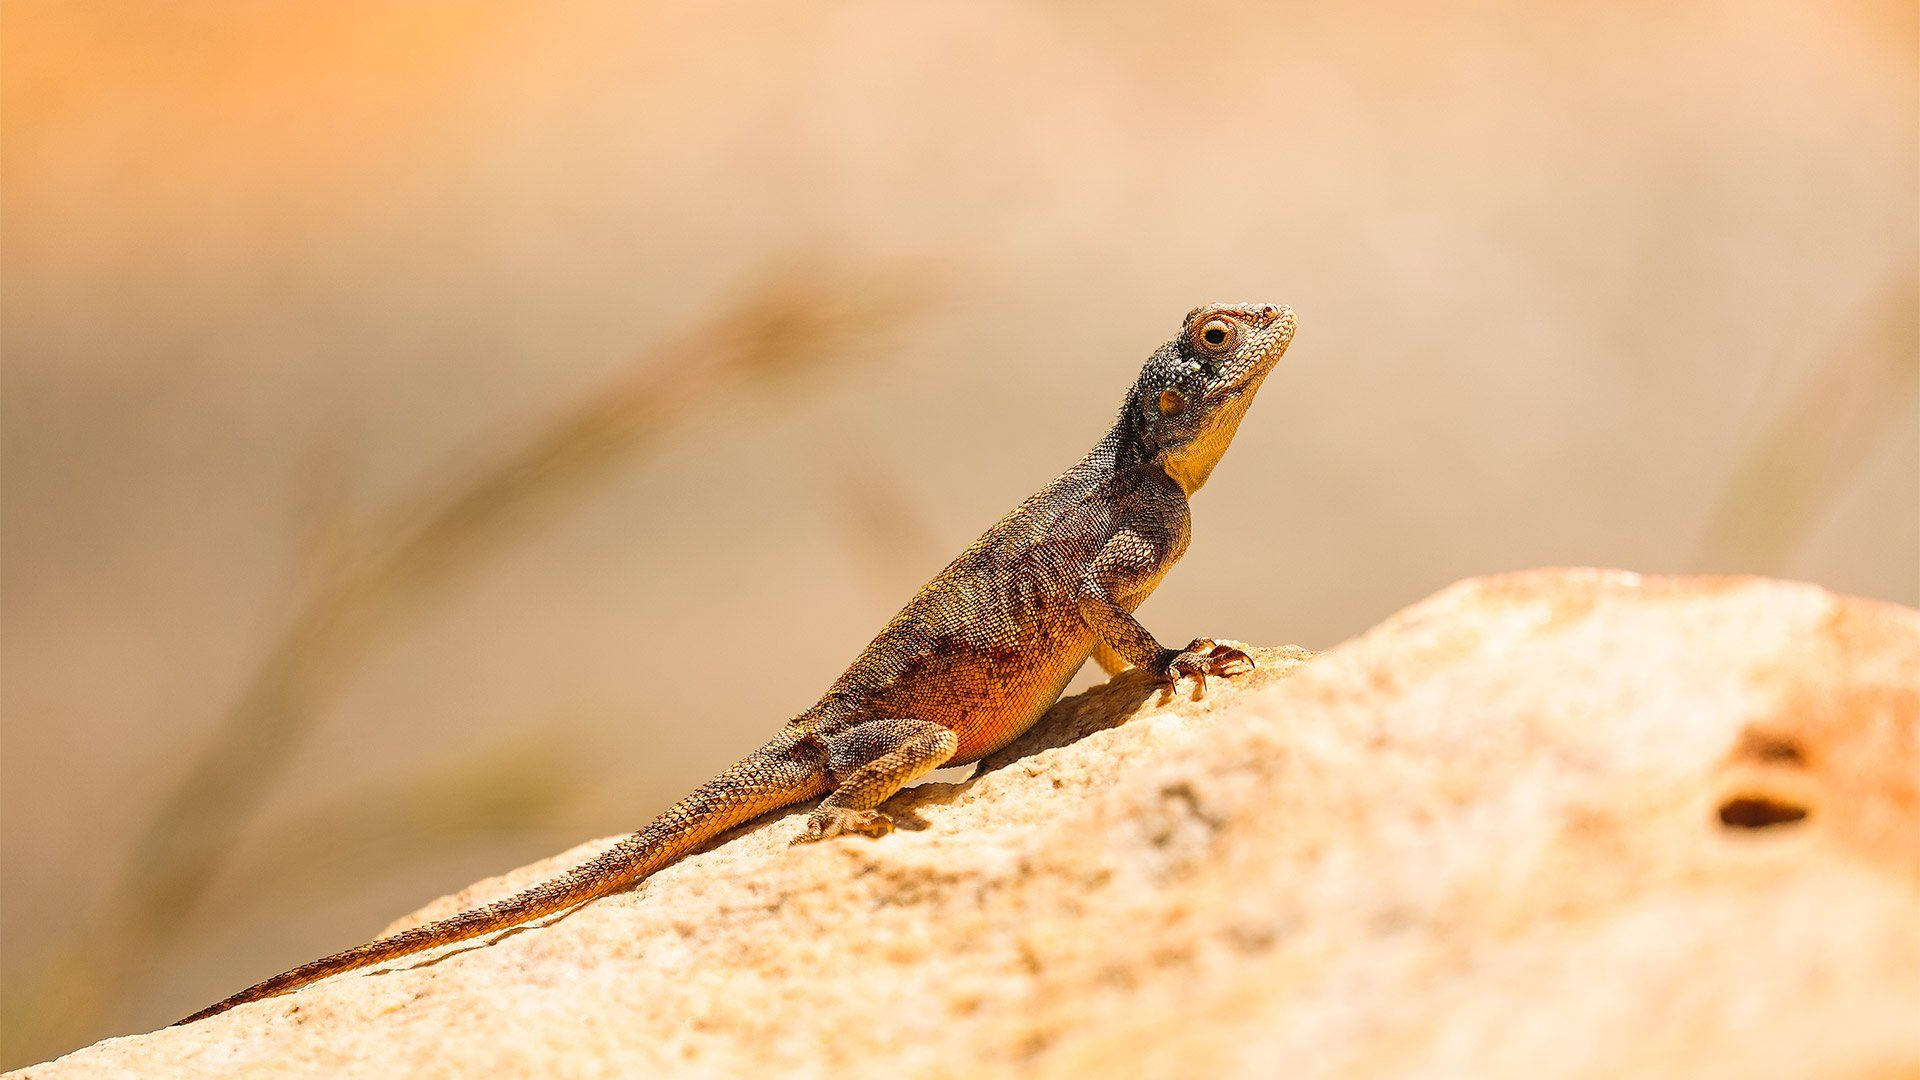 A lizard standing on a rock raises its head and upper body in the sunlight.